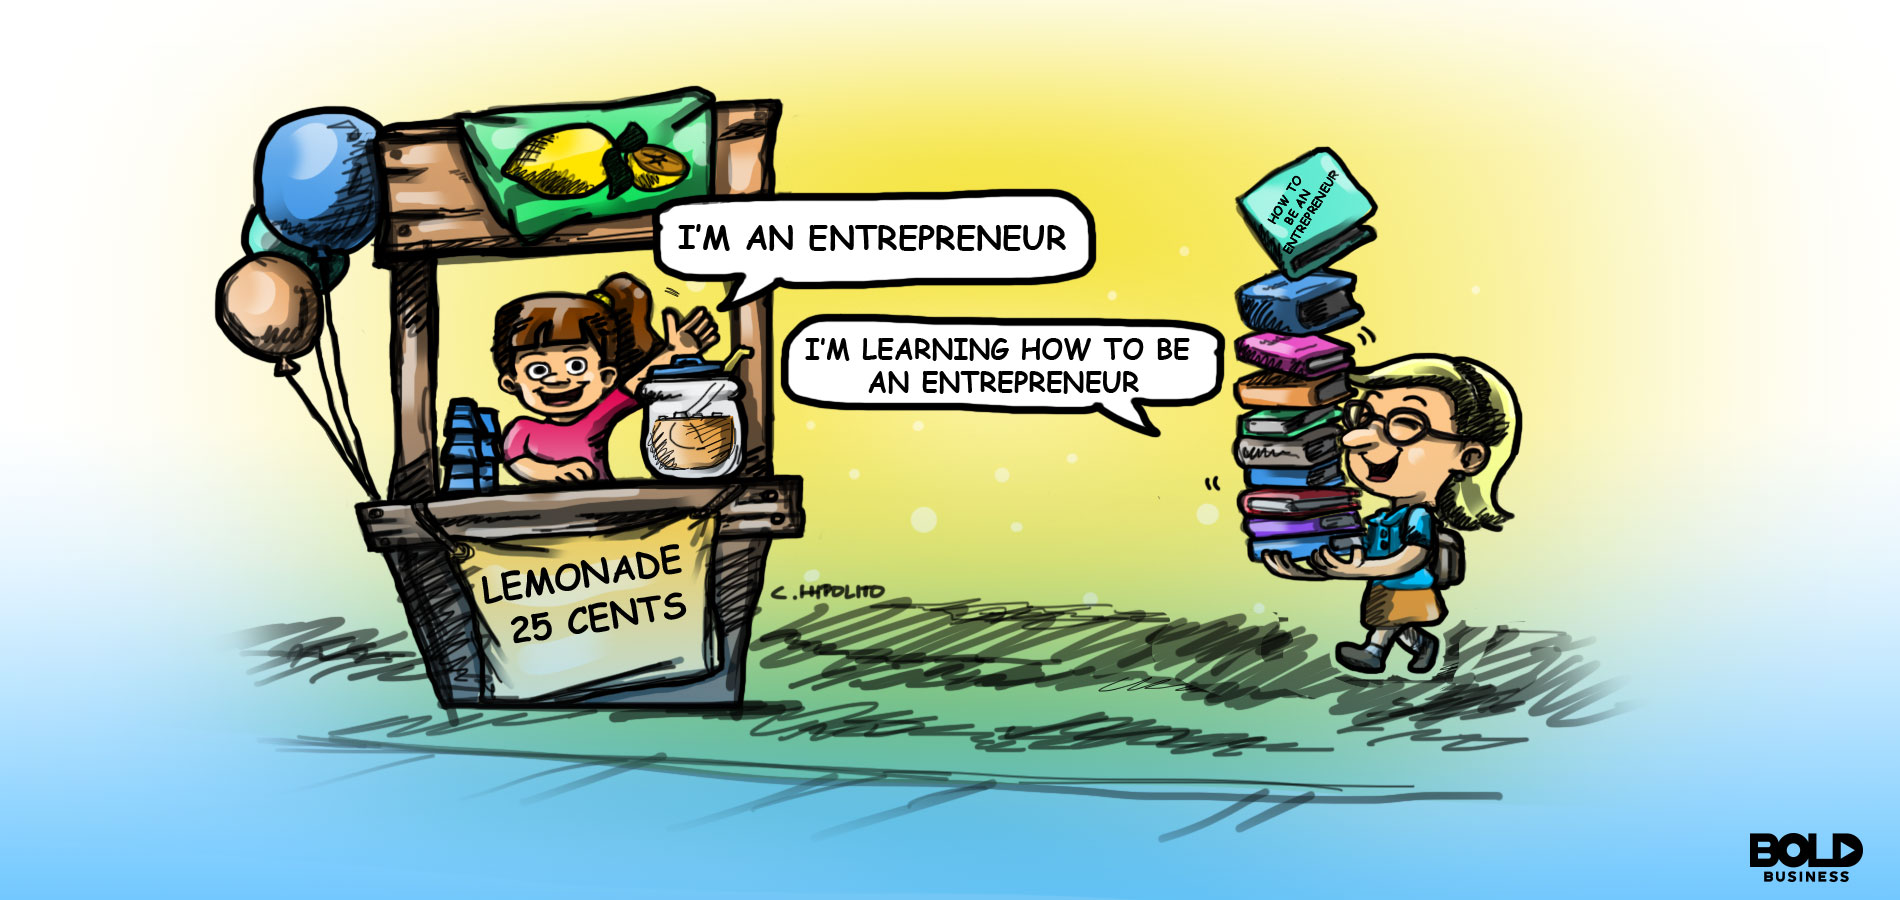 Born with Entrepreneurship Skills or Just Learned It from School?